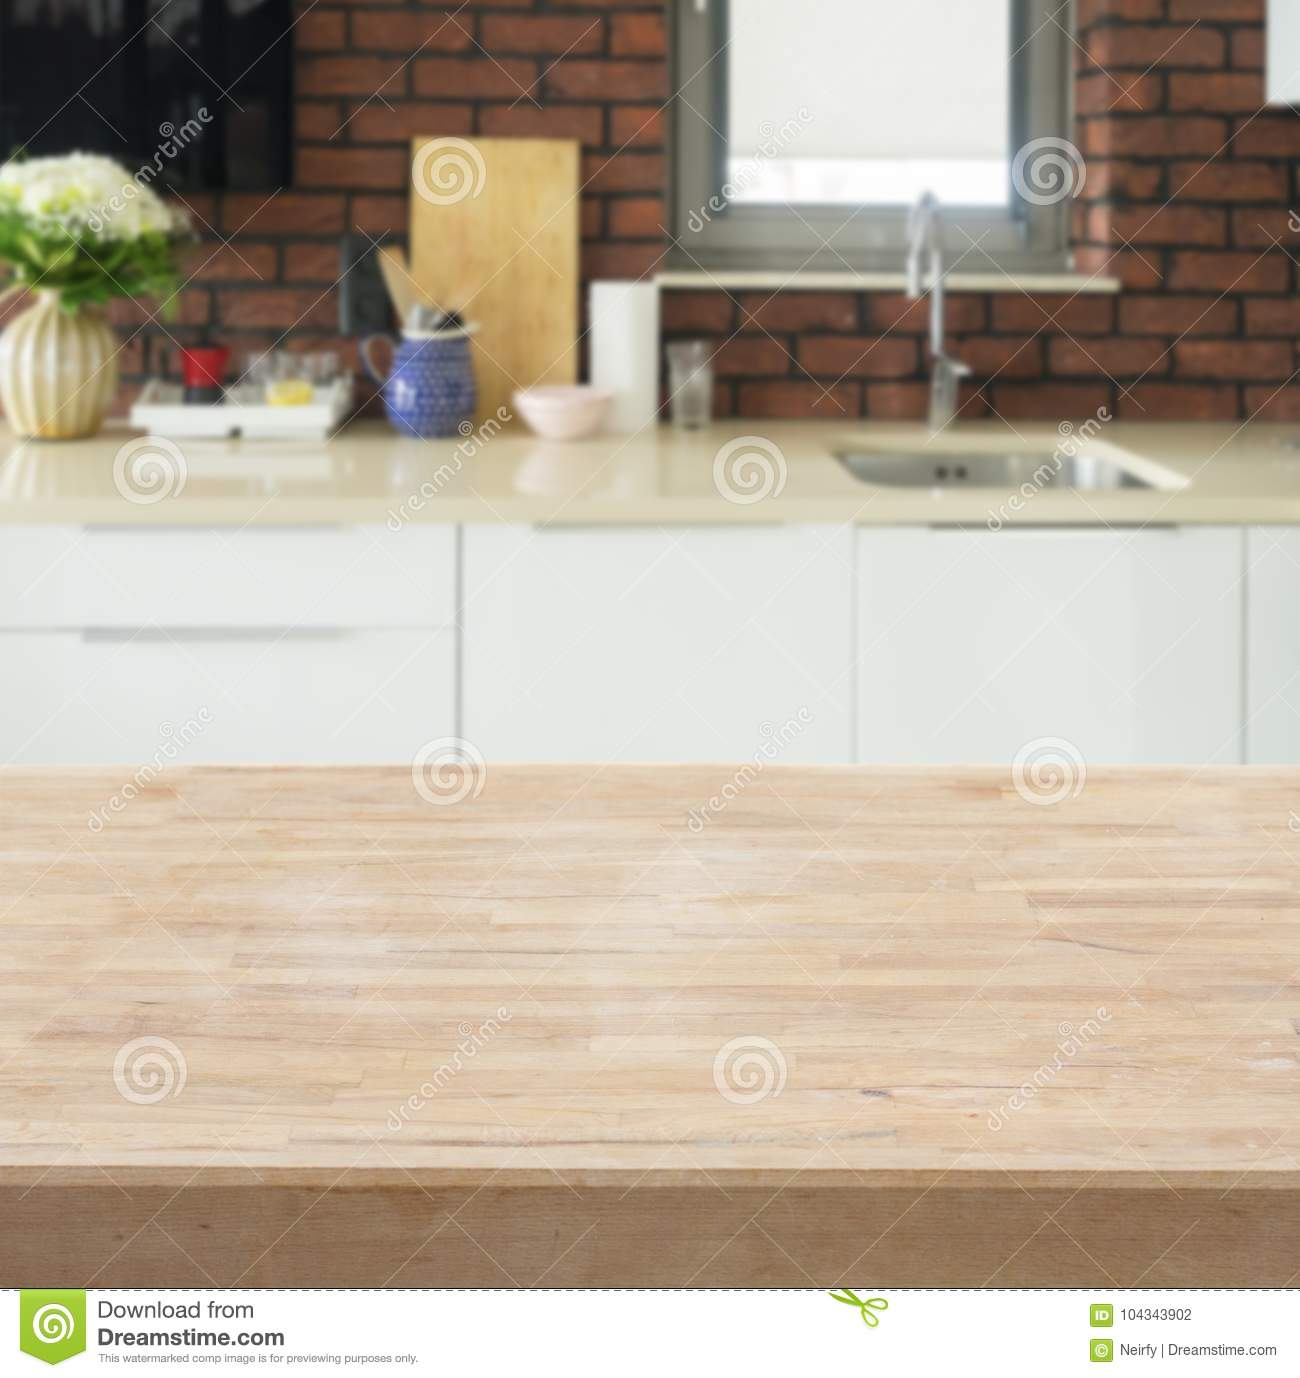 1 242 968 Kitchen Table Photos Free Royalty Free Stock Photos From Dreamstime